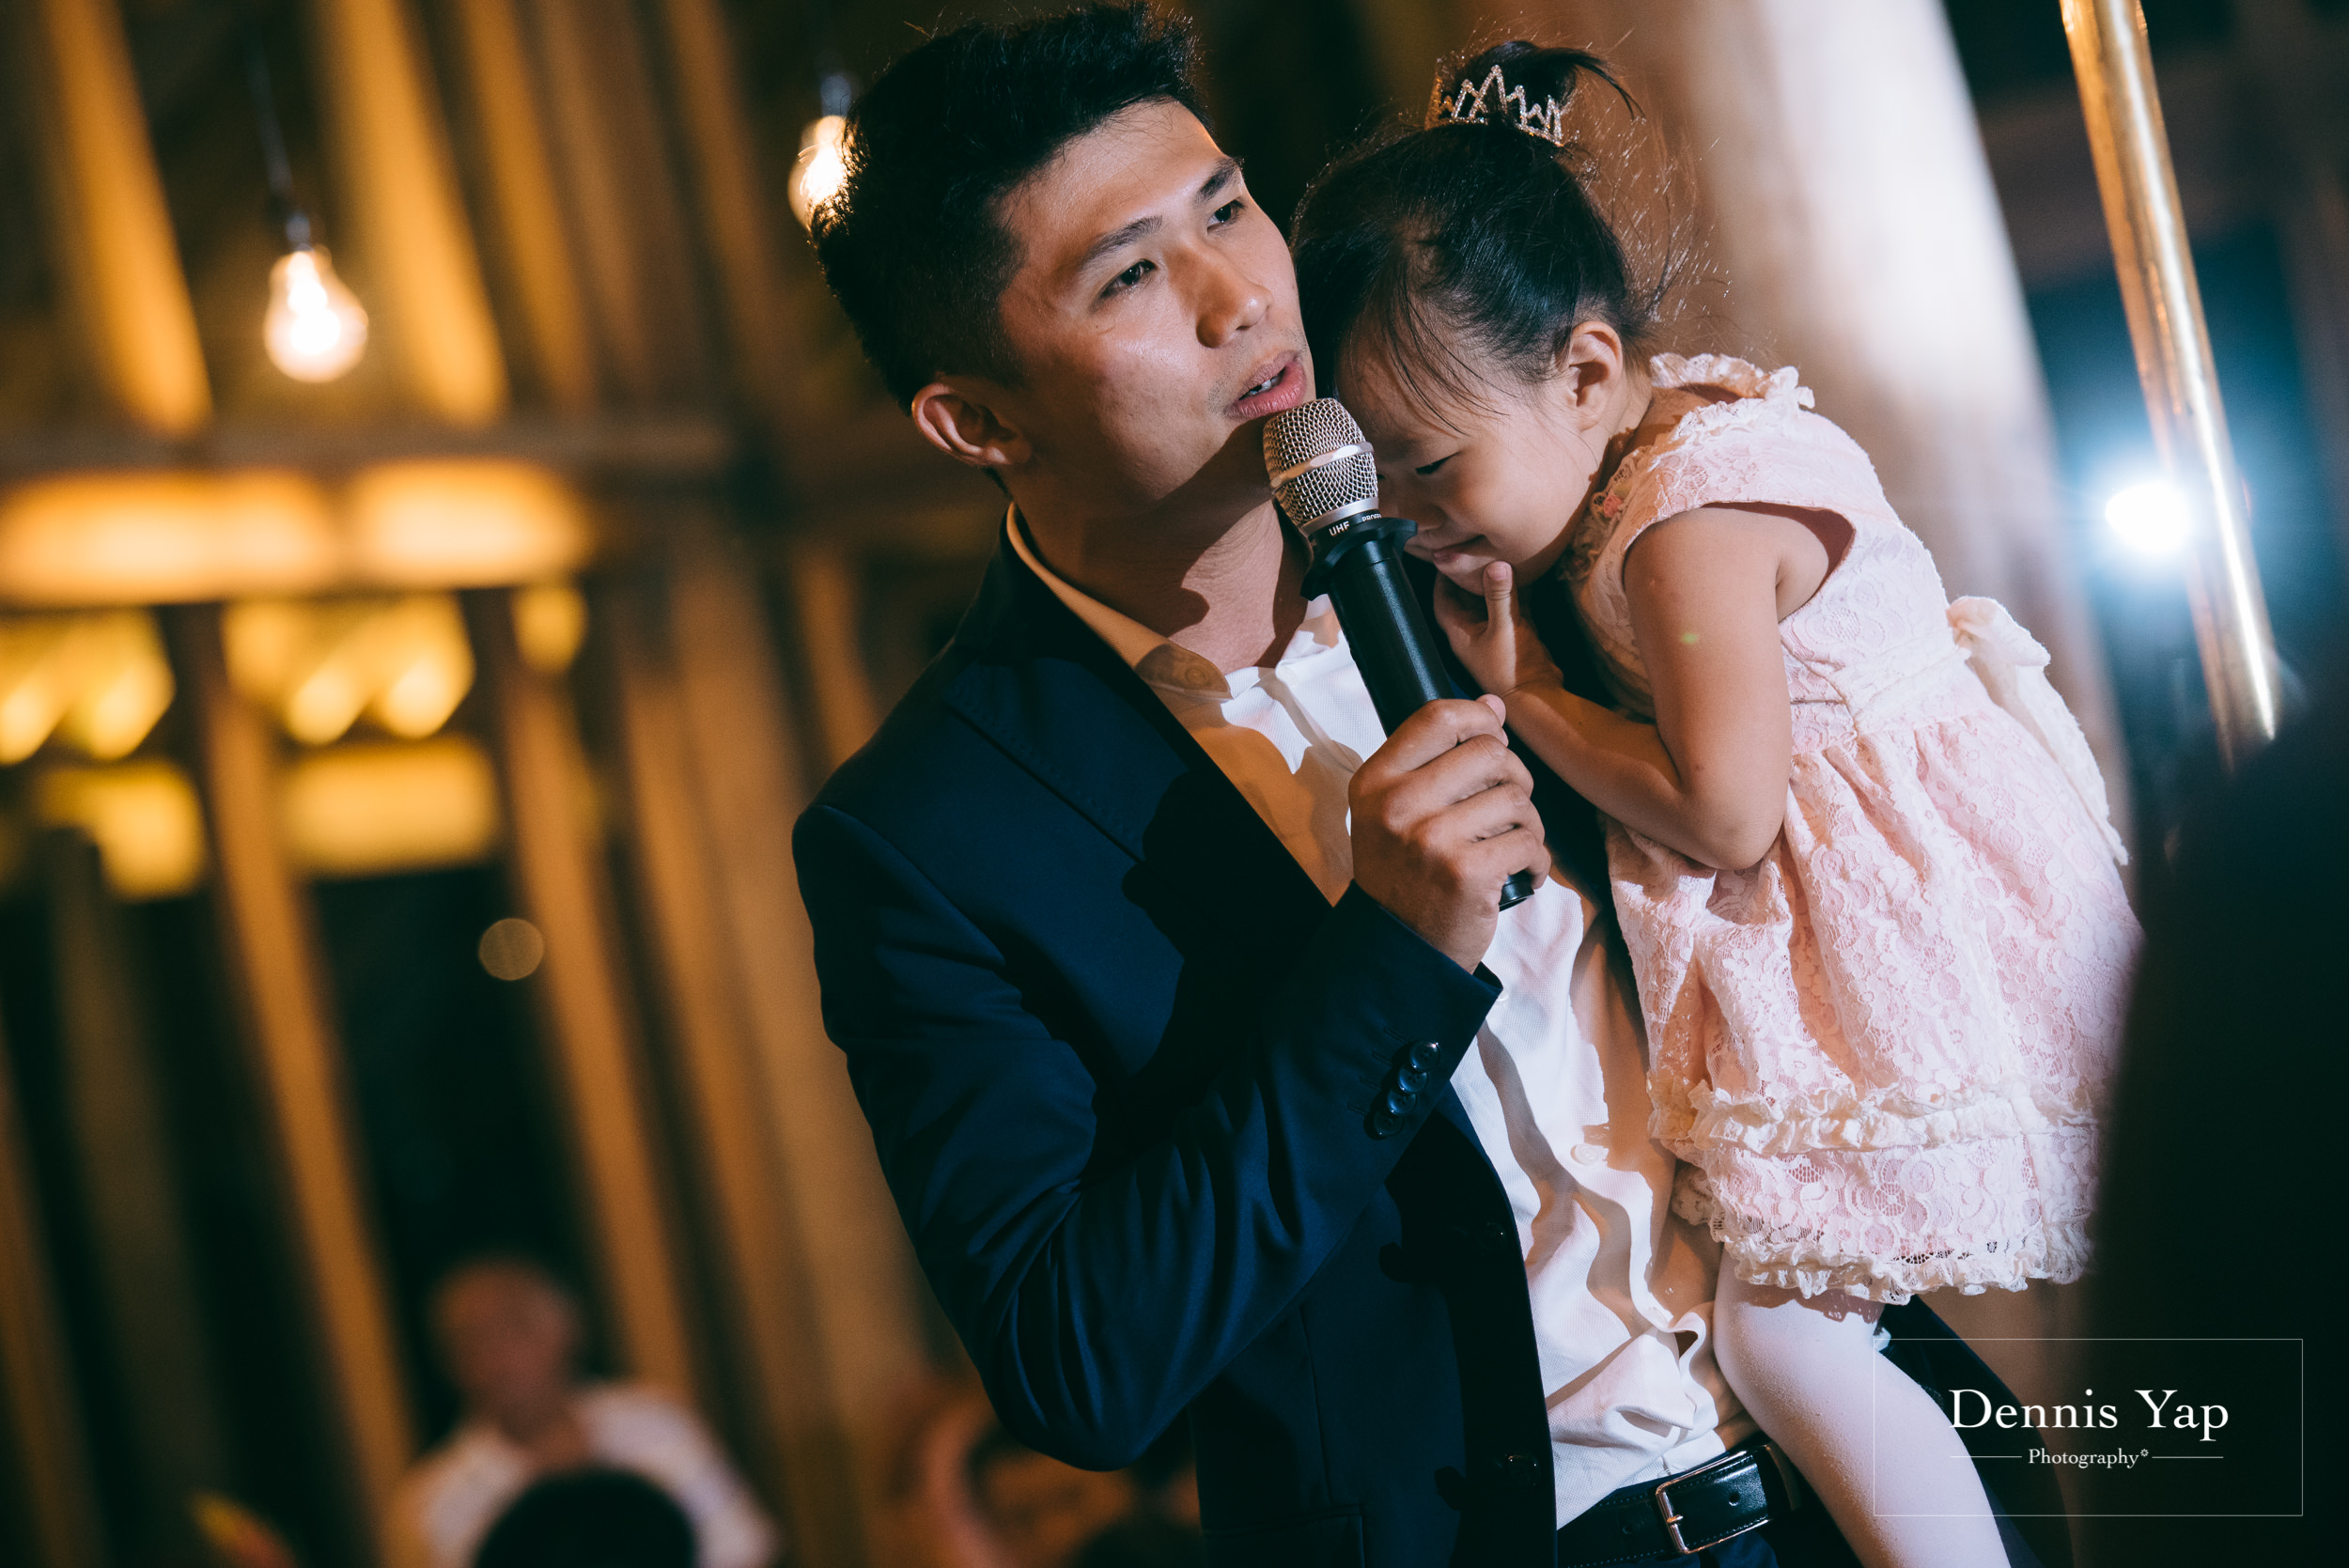 jung munn yein wedding day janda baik endarong dennis yap photography pole dancing malaysia-19.jpg